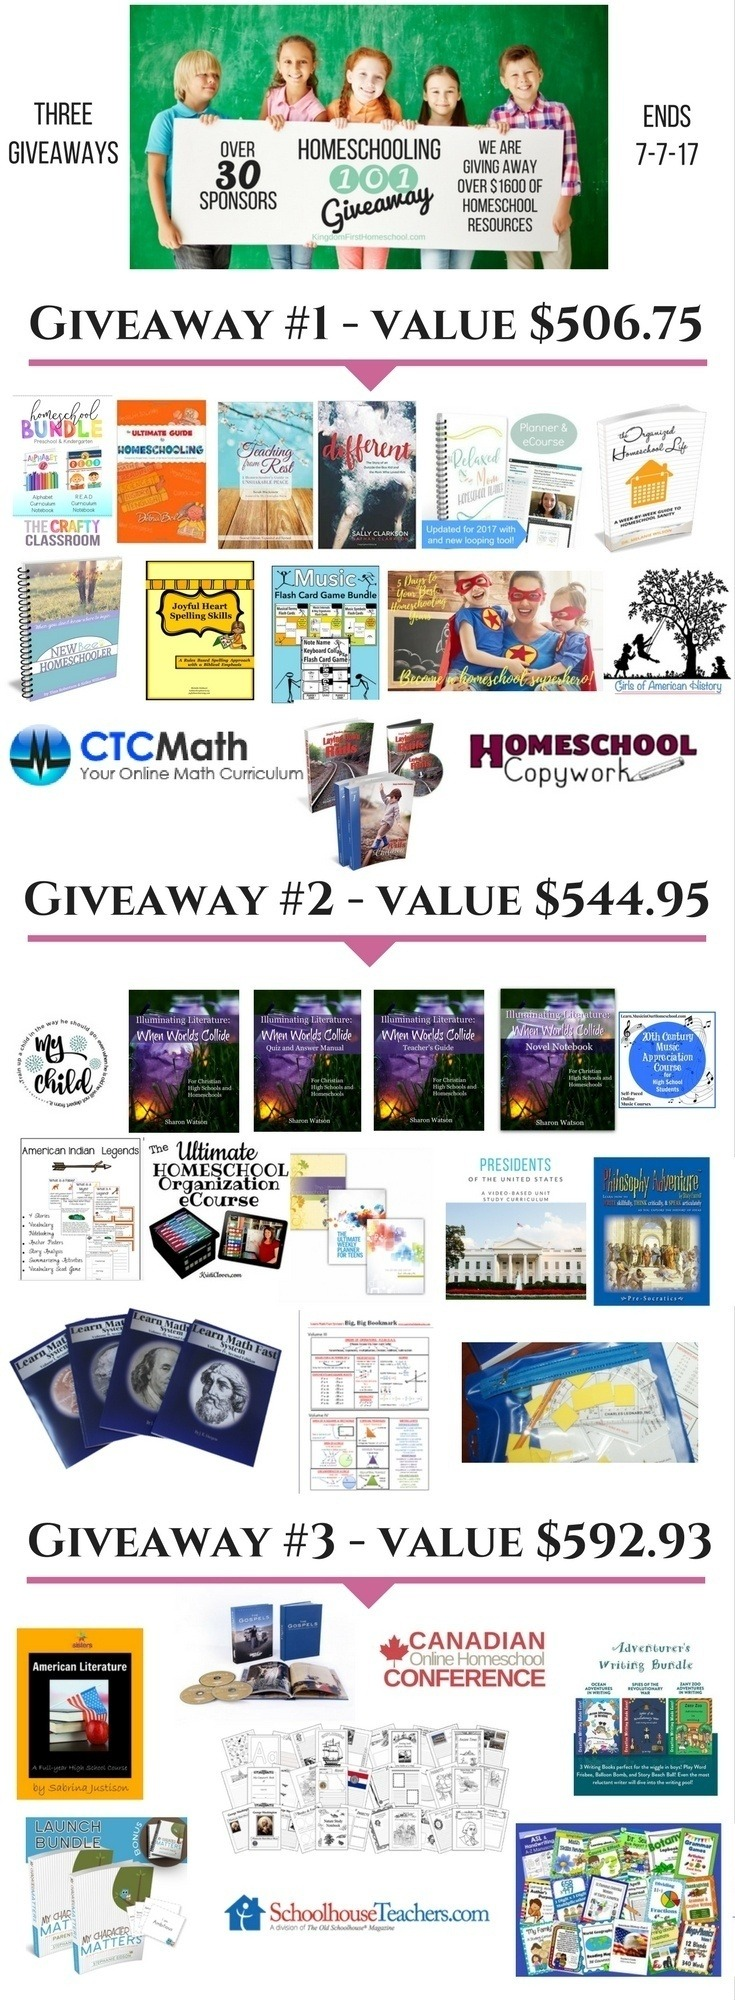 We are giving away over $1600 in homeschooling resources!